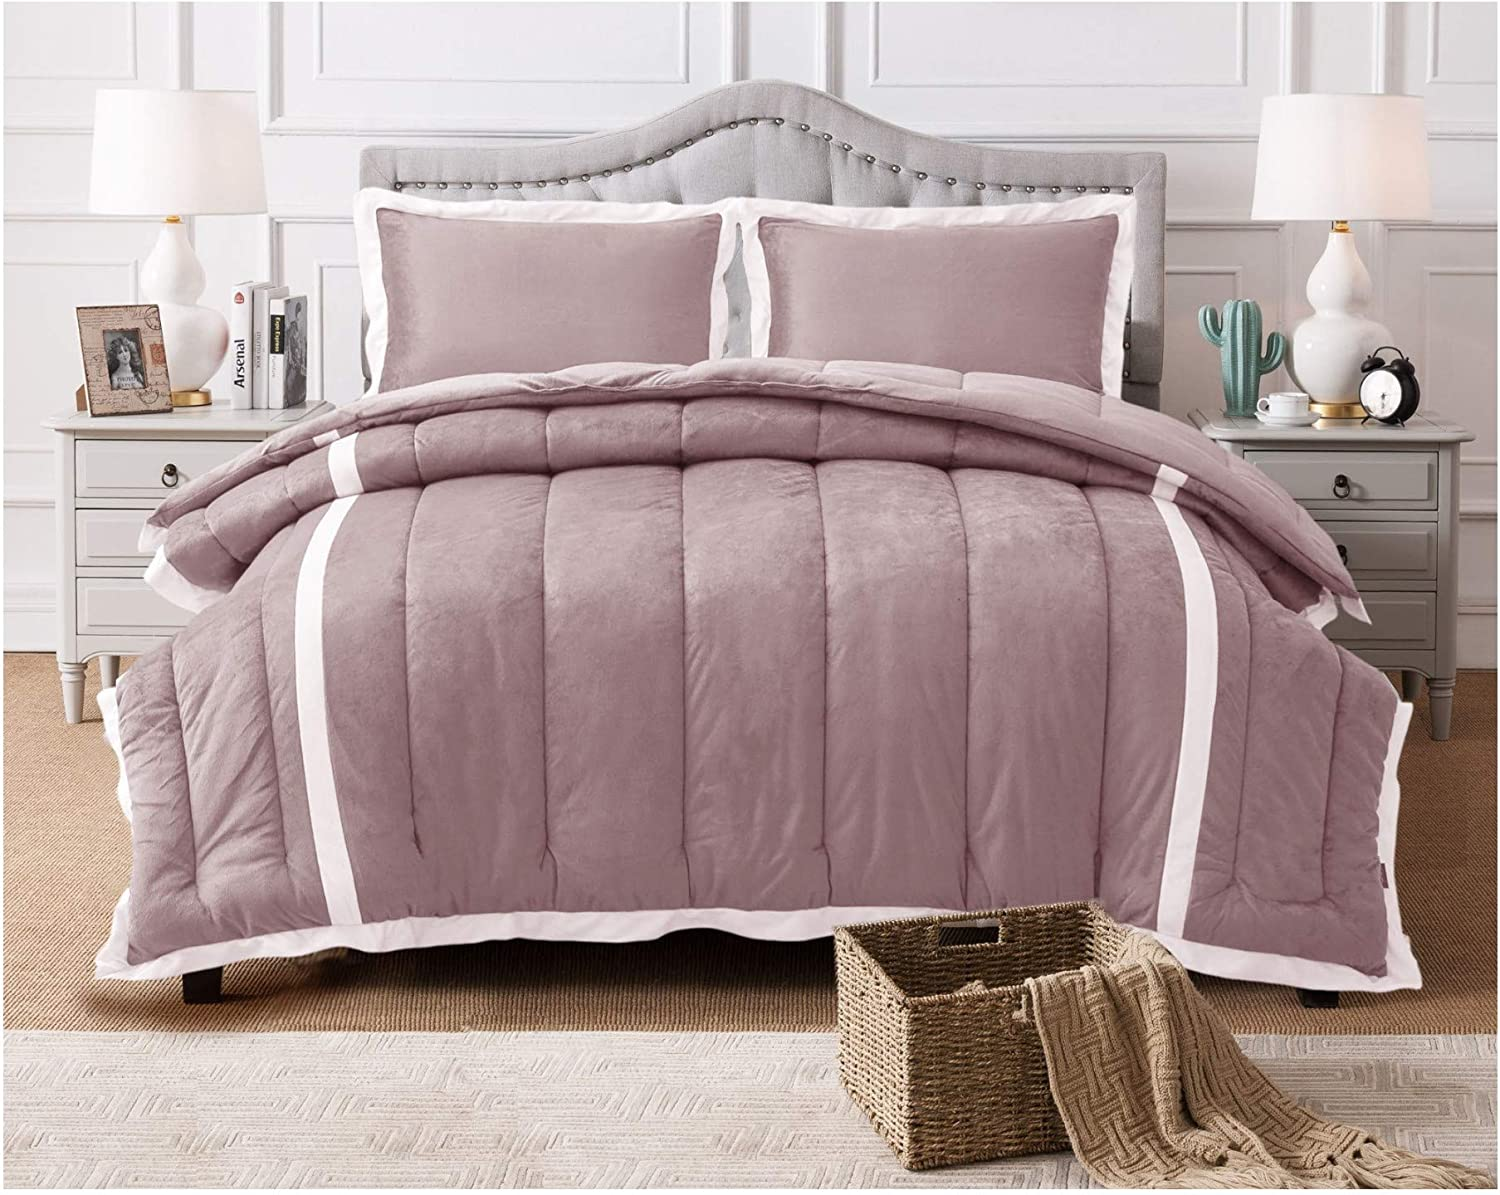 KASENTEX 3 Piece Luxury Down Alternative Comforter Set with Plush Microfiber Stripe Design, Reversible and Machine Washable, Queen with 2 Shams, Orchid Pink